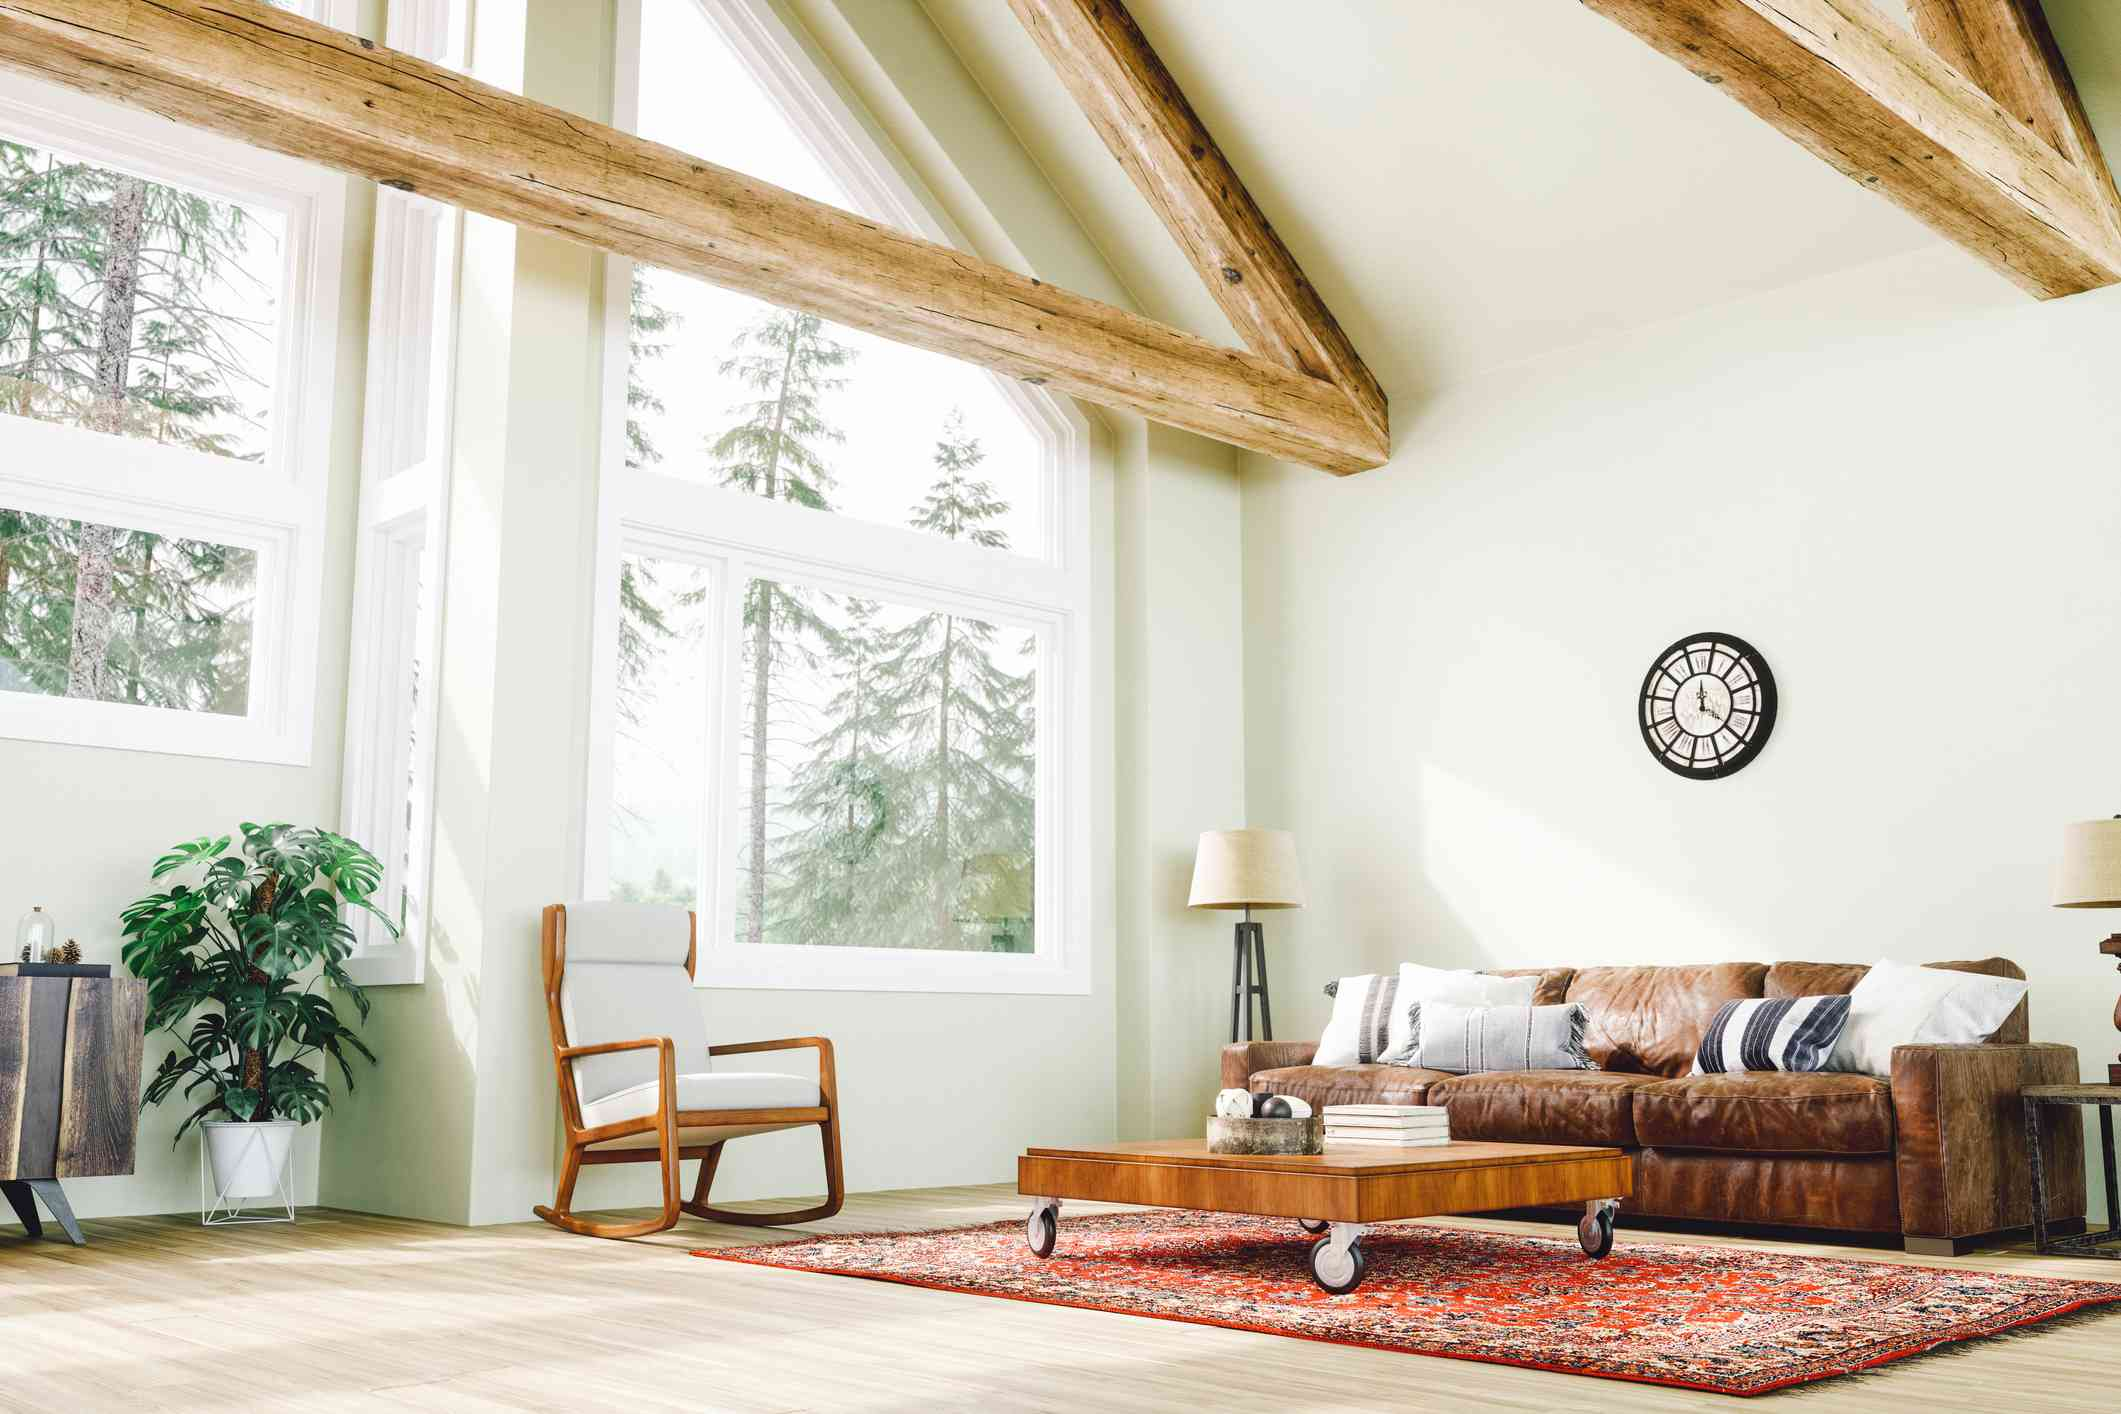 Modern rustic French country living room